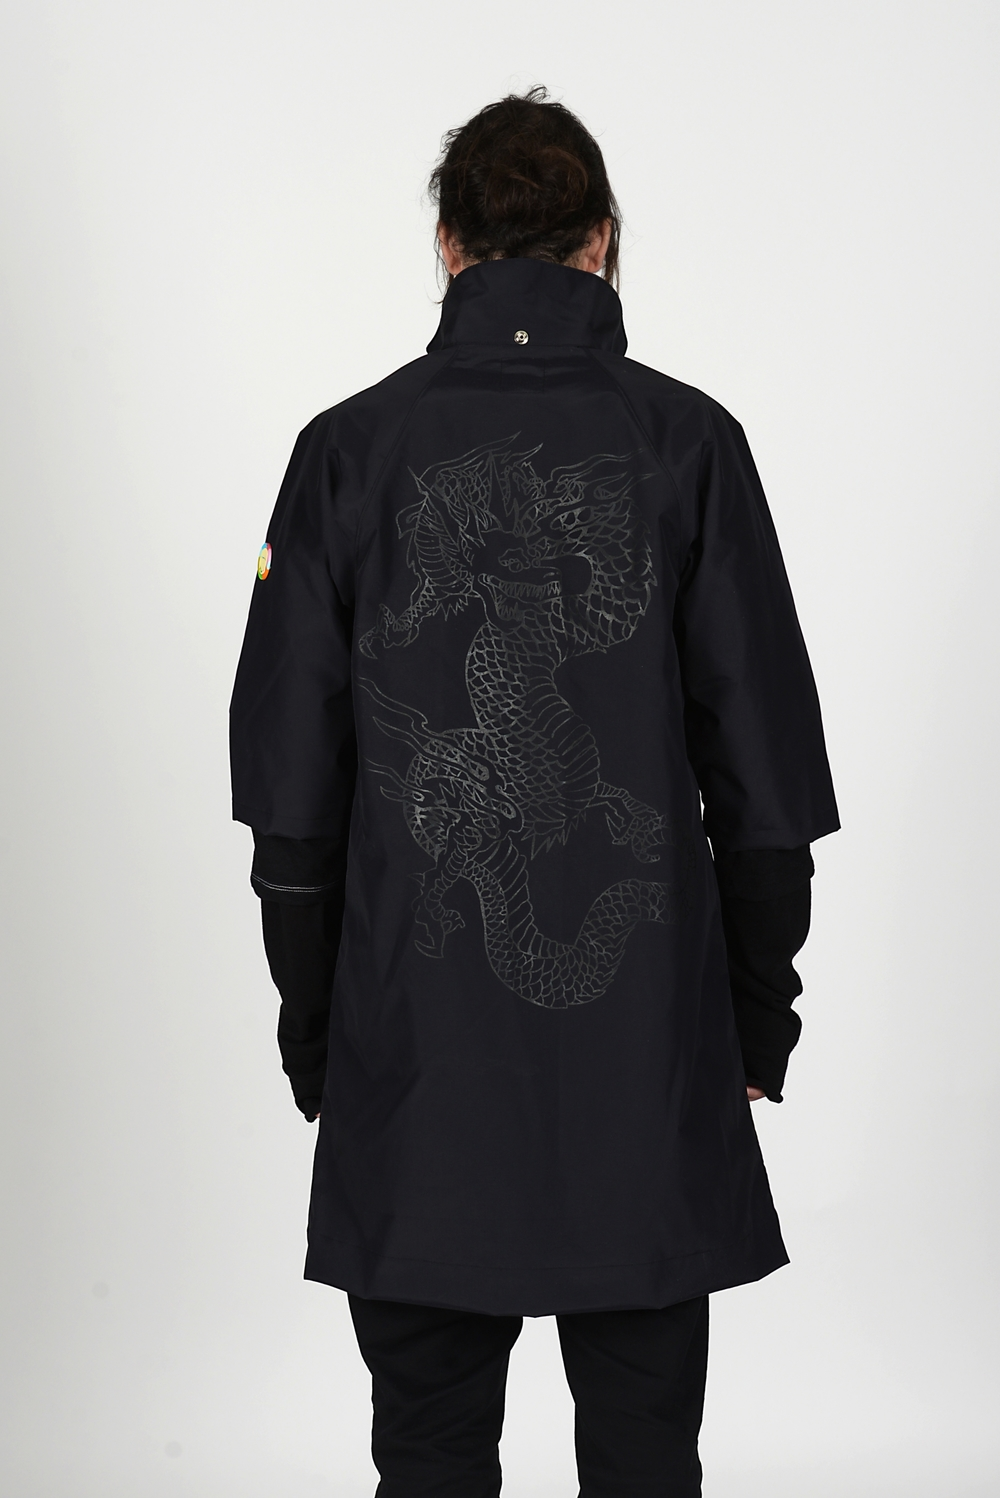 05 Heightened Sense Black Dragon Coat.jpg